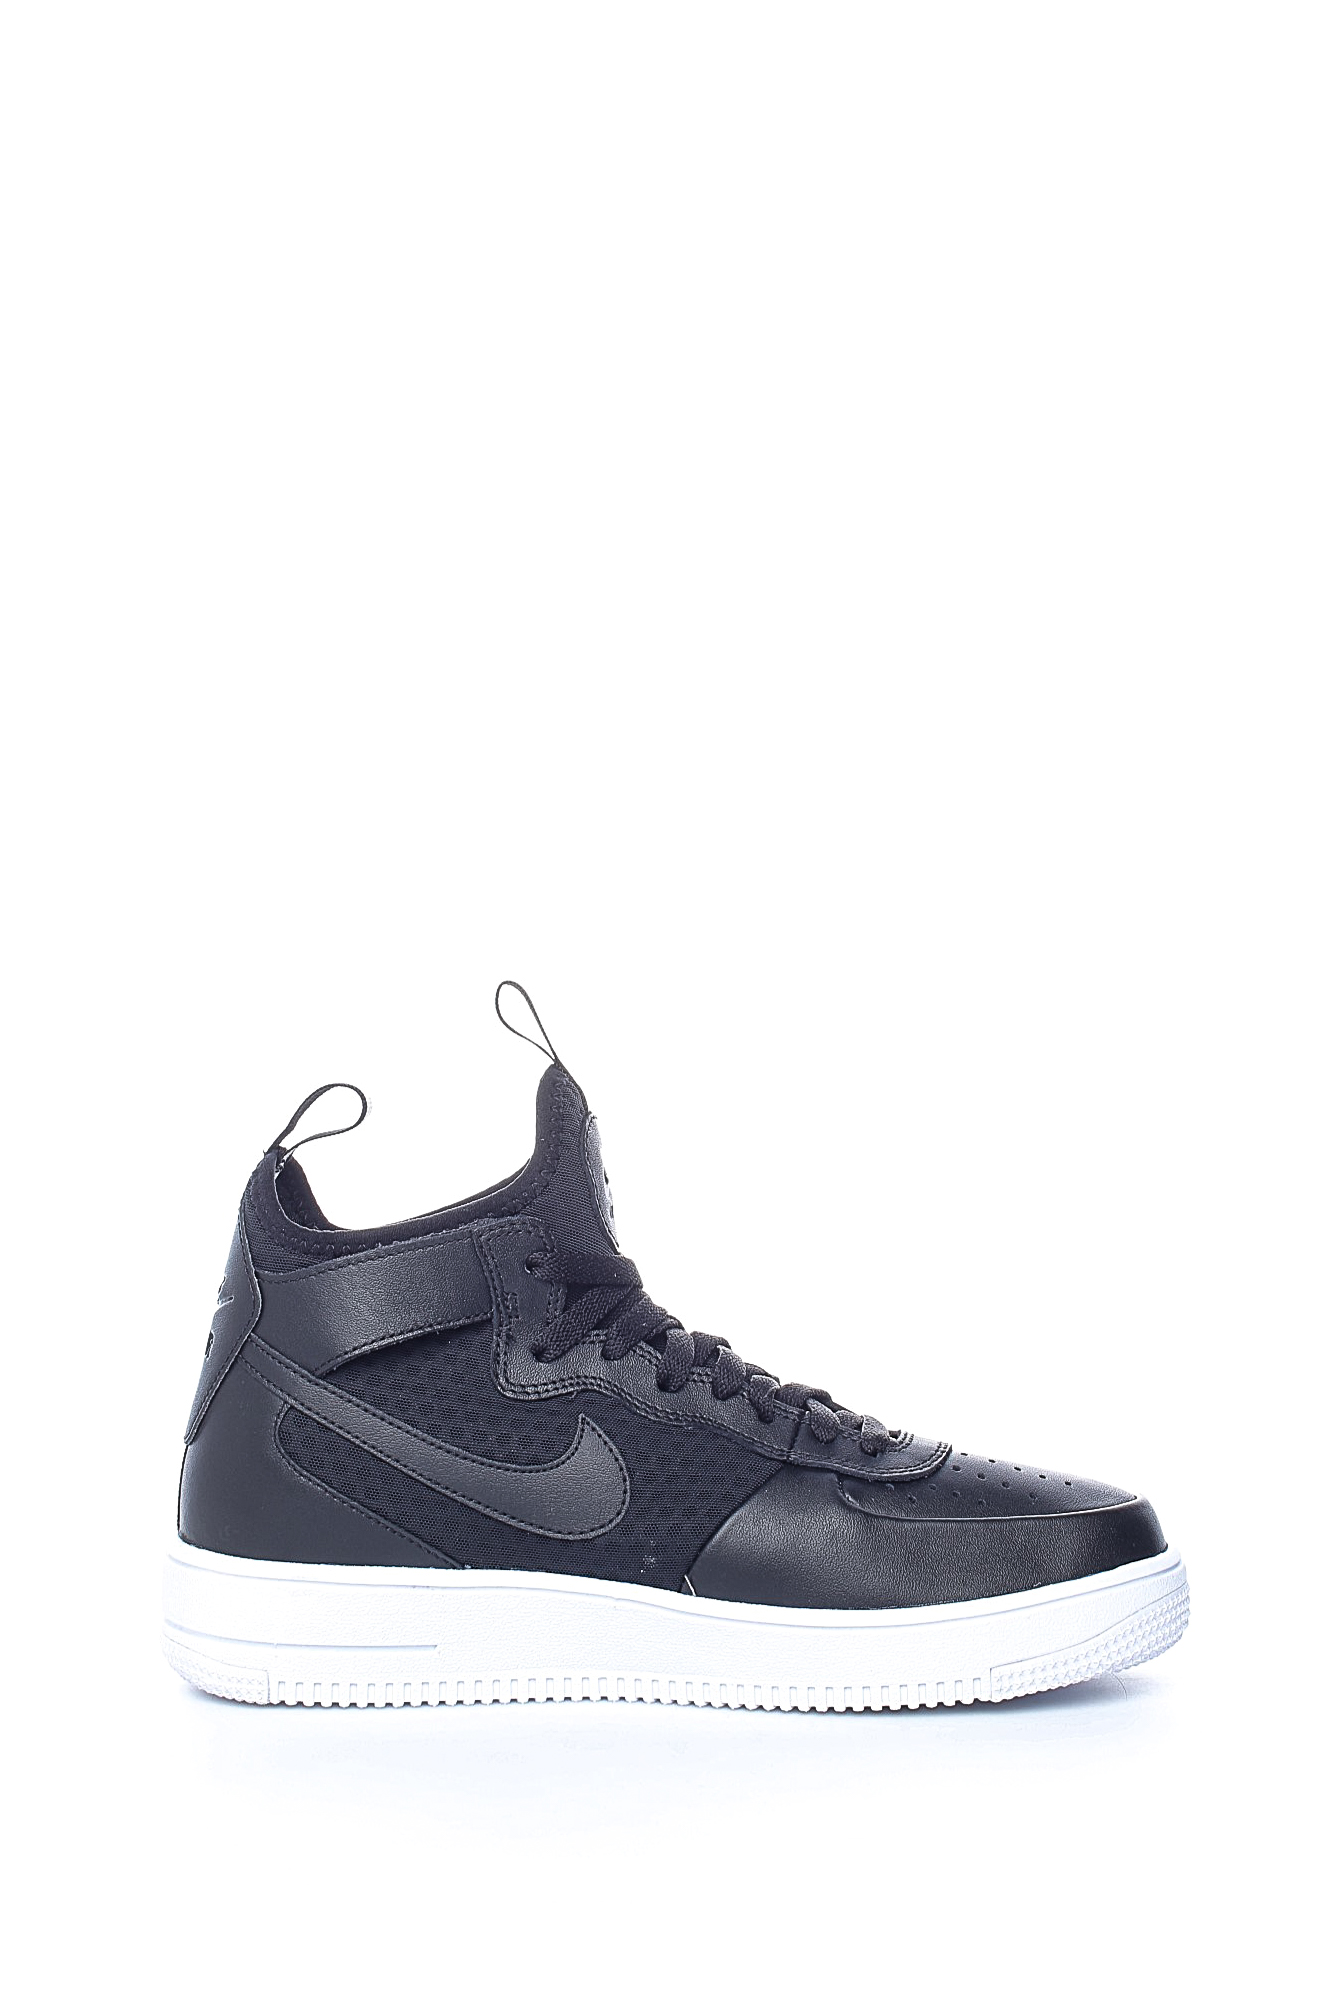 NIKE – Ανδρικά παπούτσια Nike AIR FORCE 1 ULTRAFORCE MID μαύρα